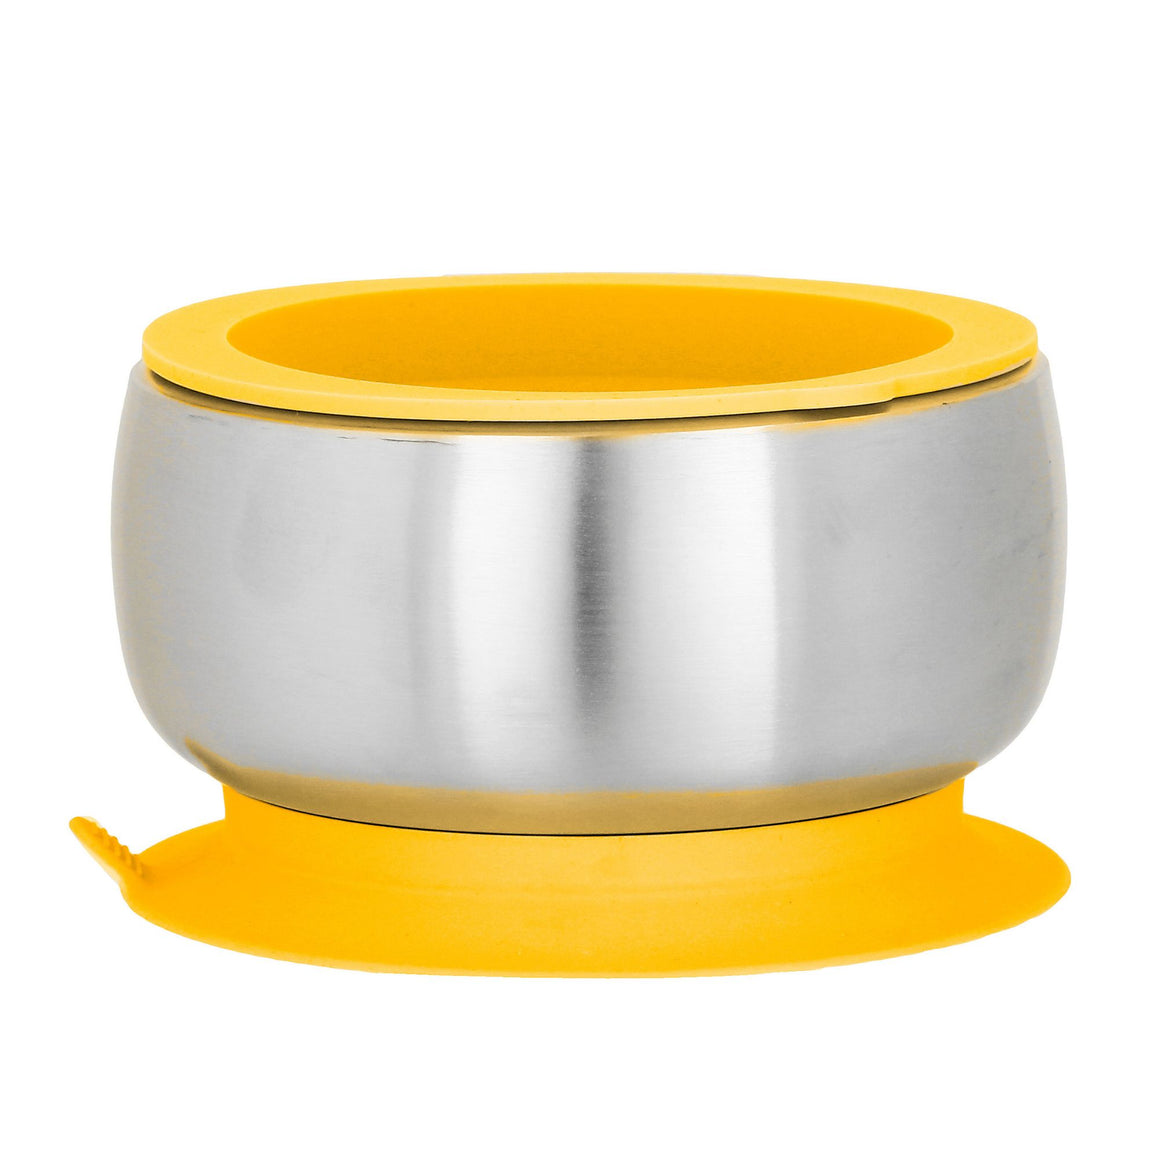 Avanchy - Avanchy Stainless Steel Baby Bowl